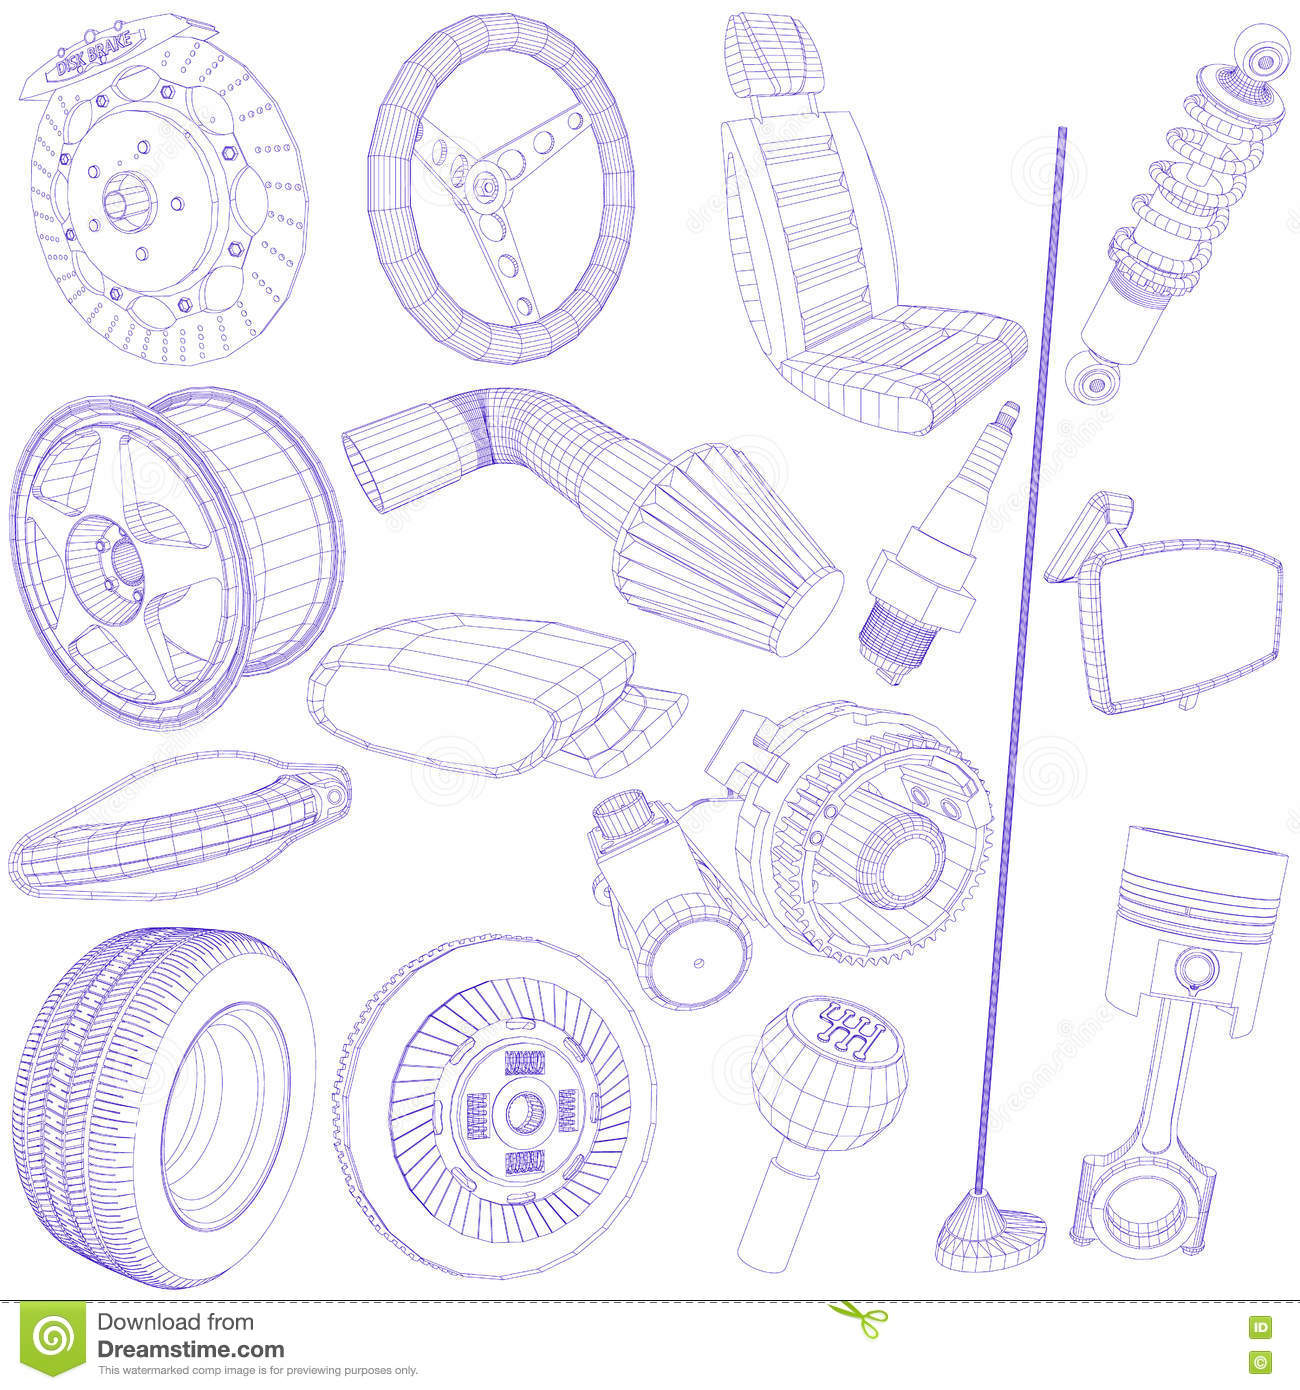 Blue pen of car parts icon stock vector. Illustration of inter ...